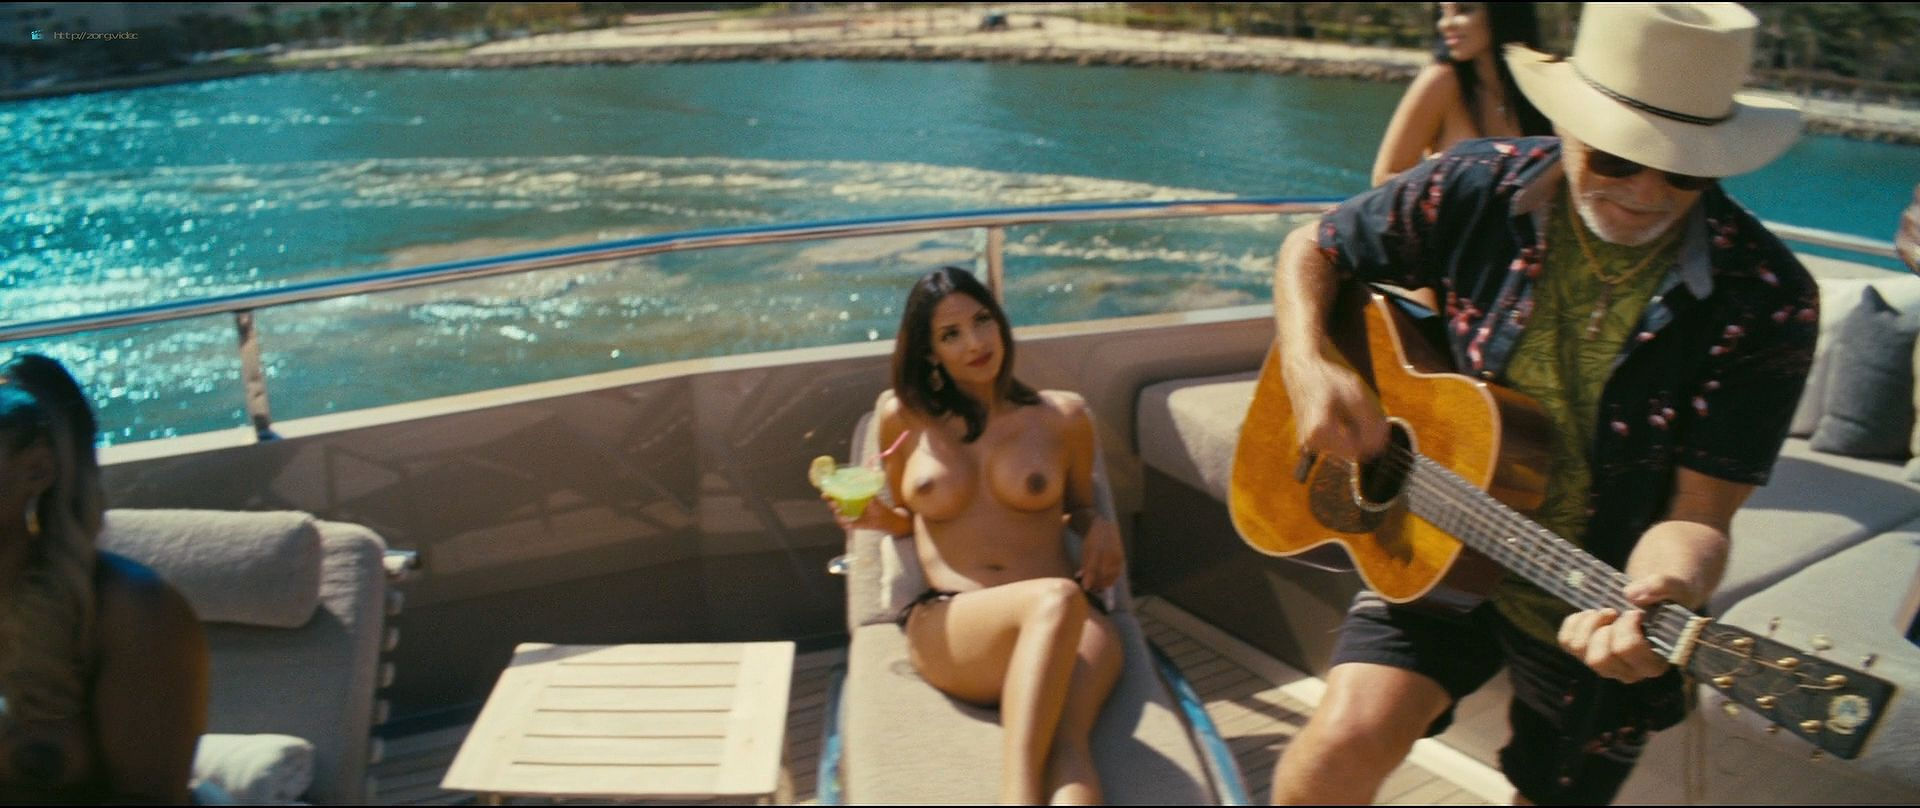 Isla Fisher hot and sexy others nude topless - The Beach Bum (2019) 1080p BluRay (16)